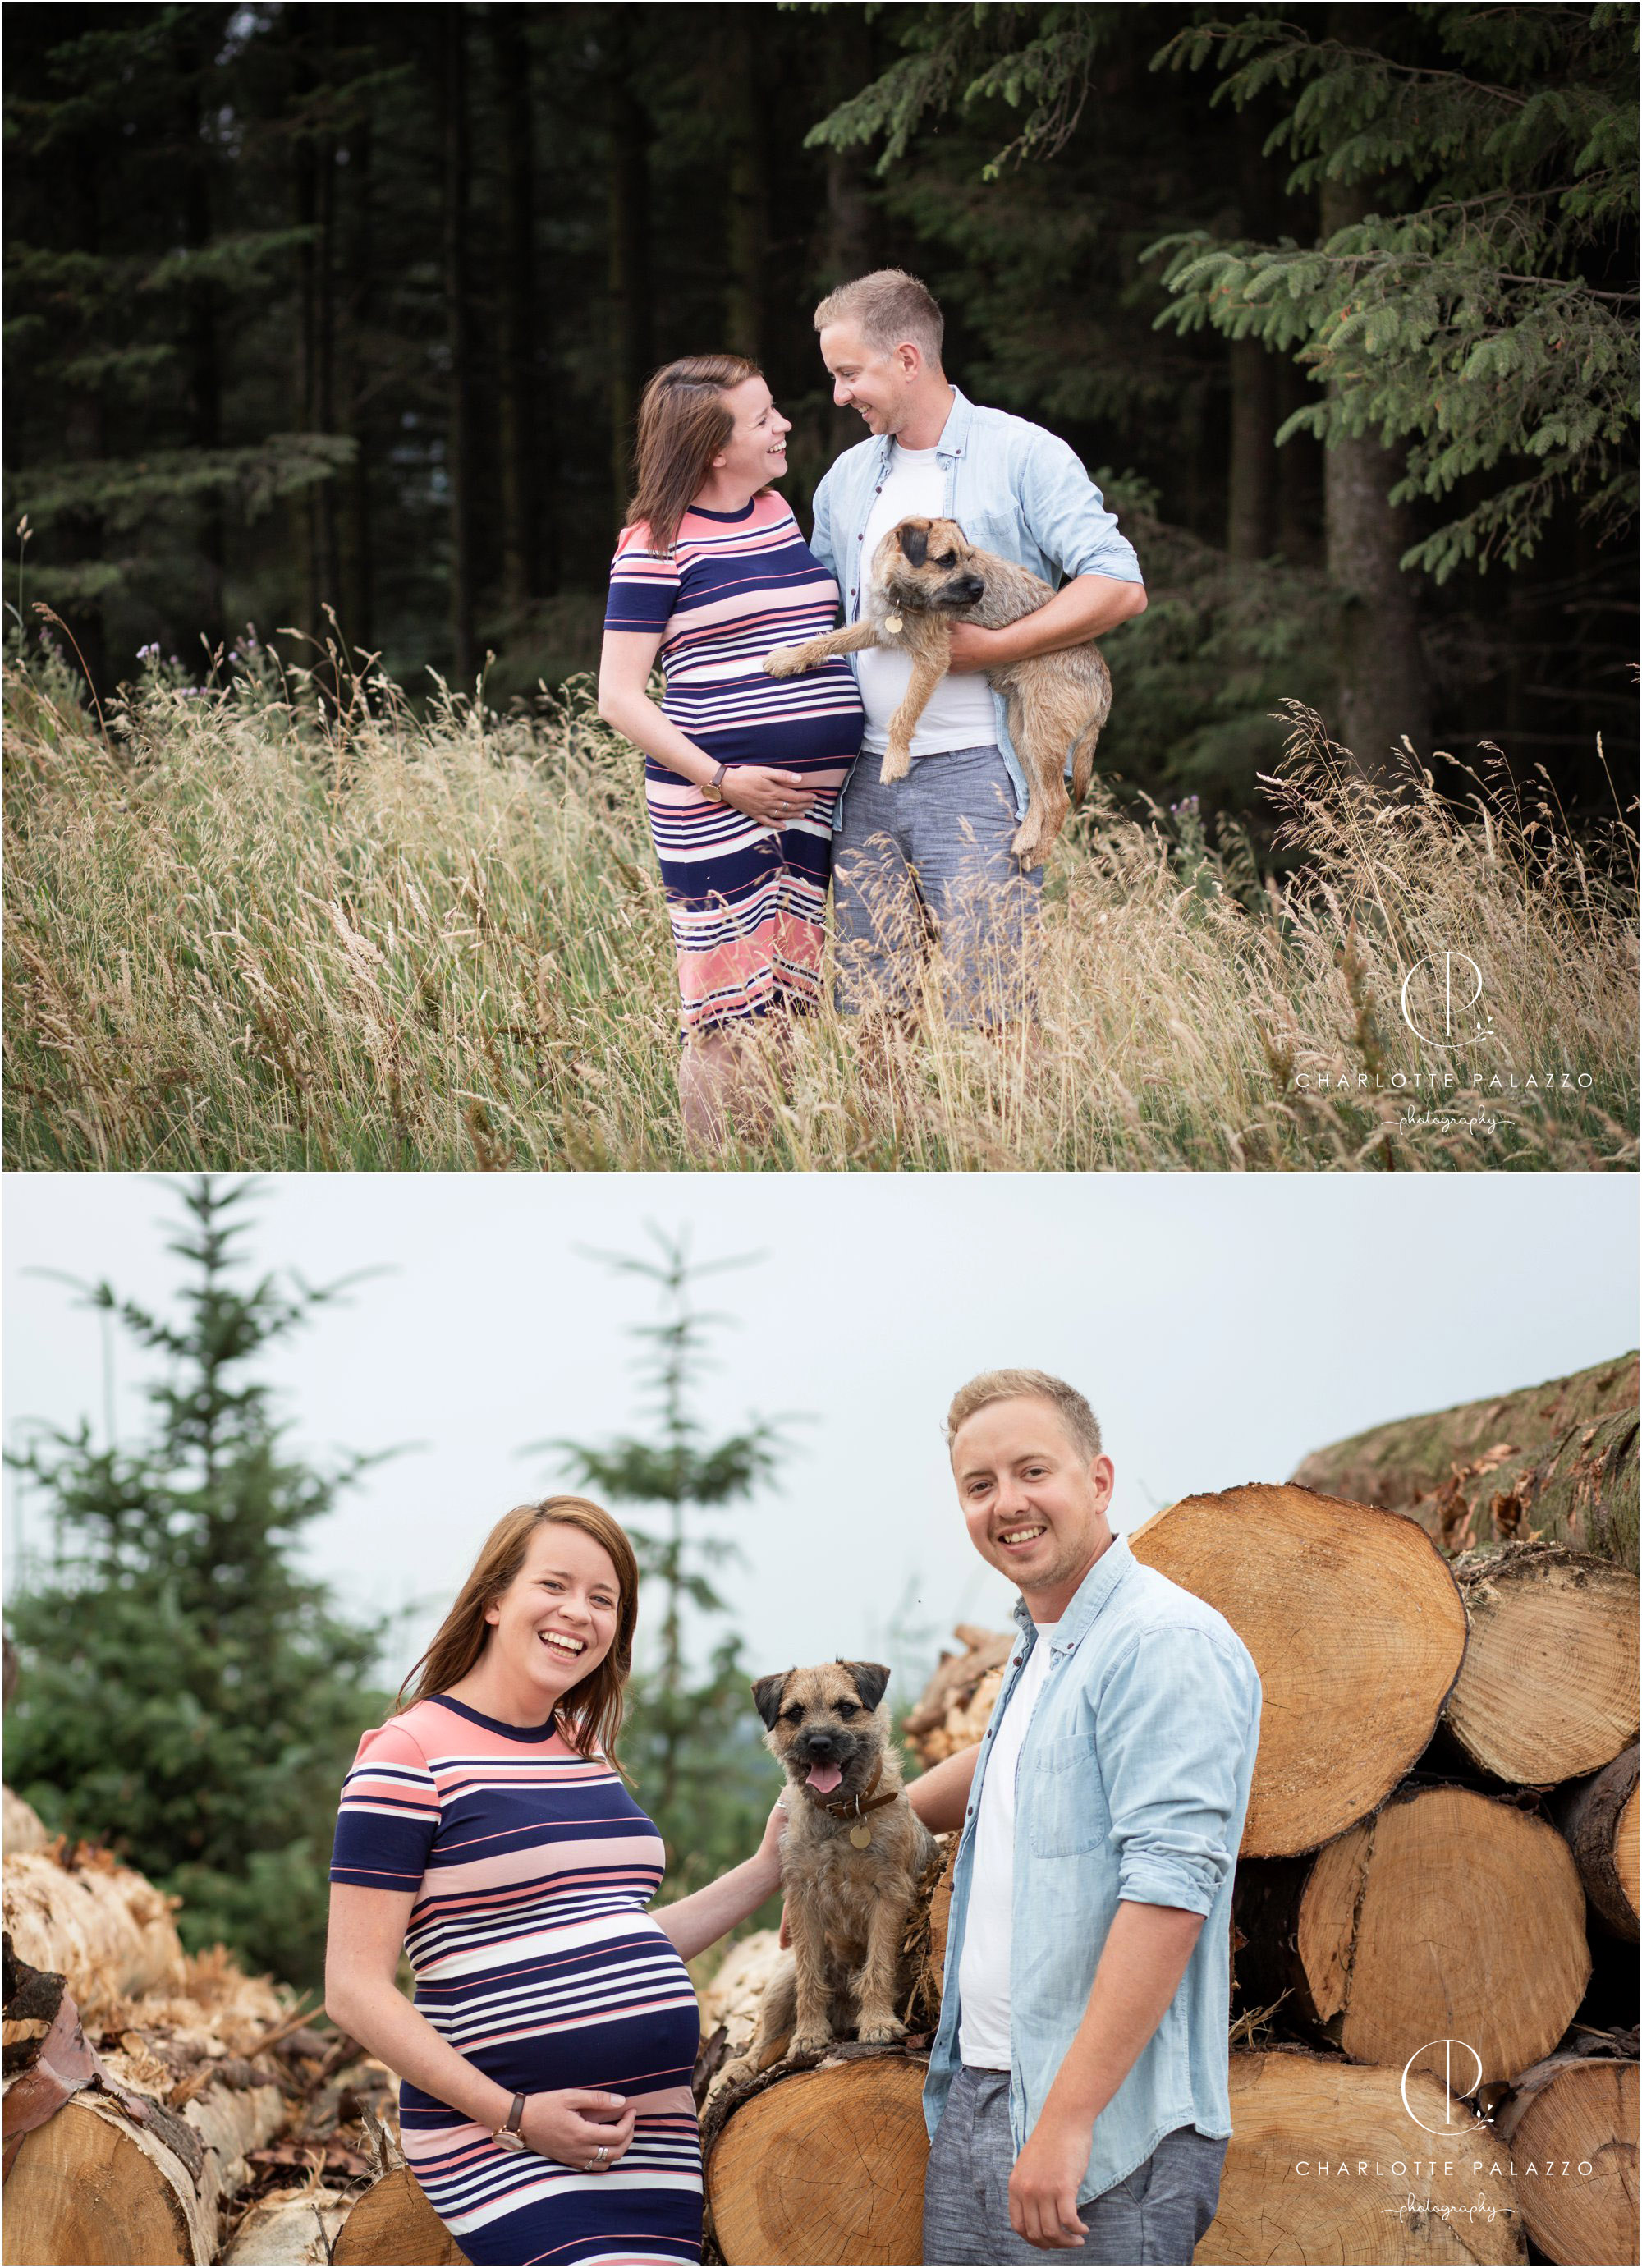 Maternity Family Photography Cheshire Macclesfield Forest_0159.jpg